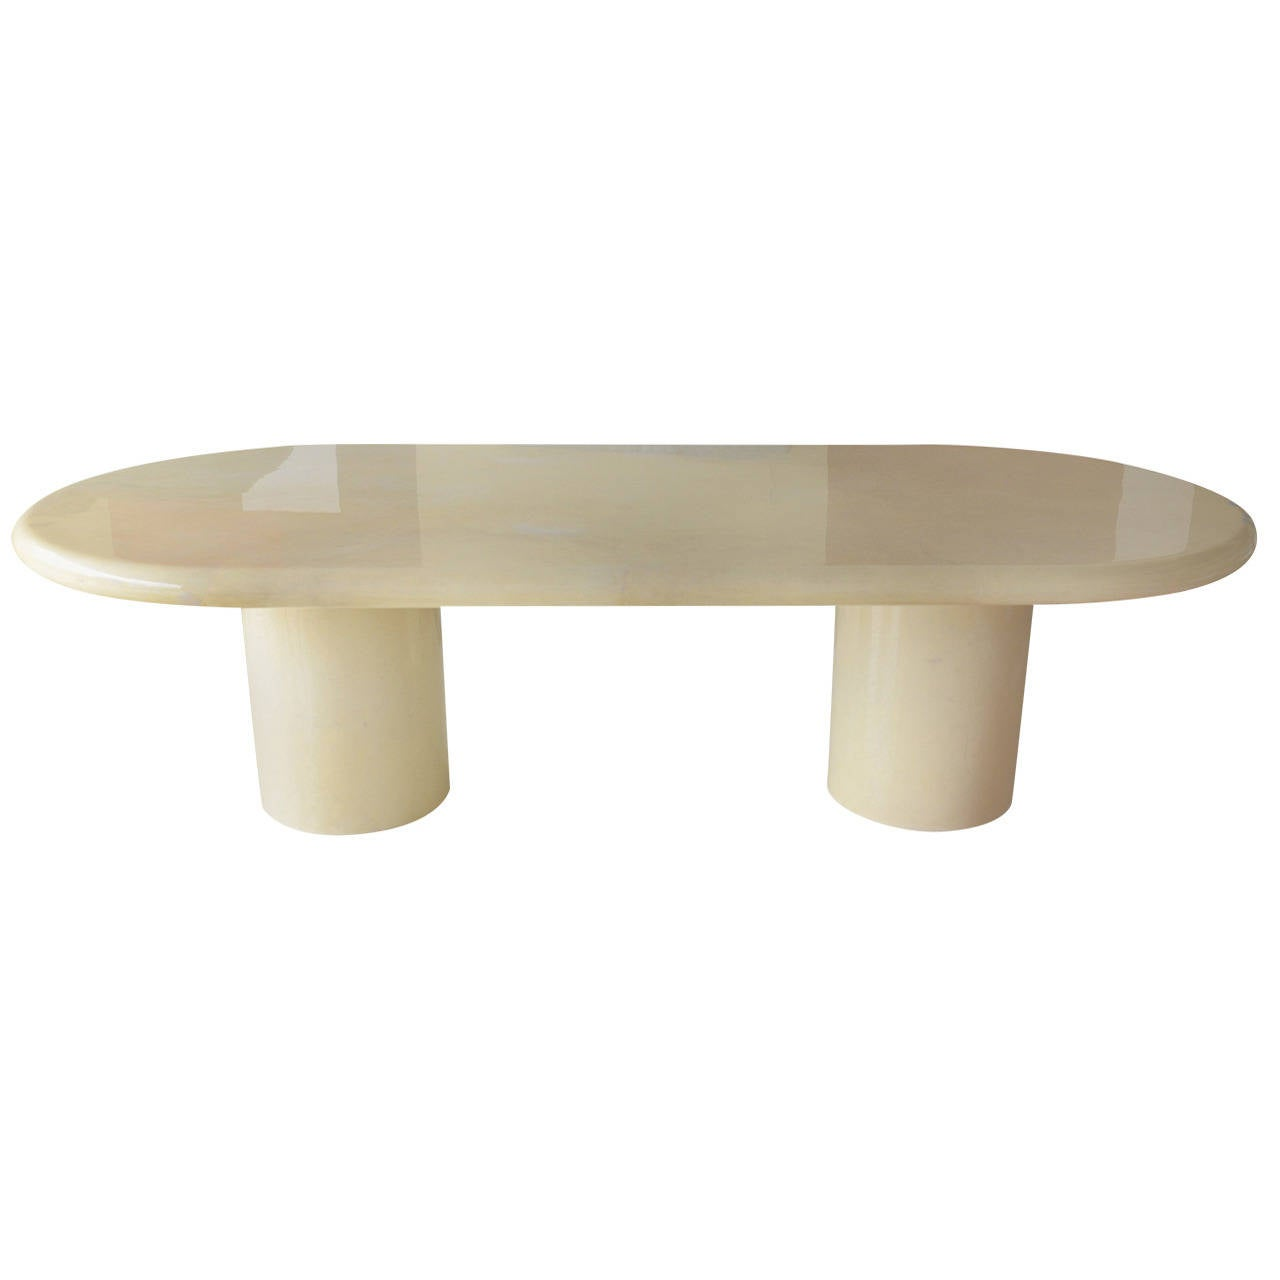 Lacquered Karl Springer Style Goatskin Oval Dining Table